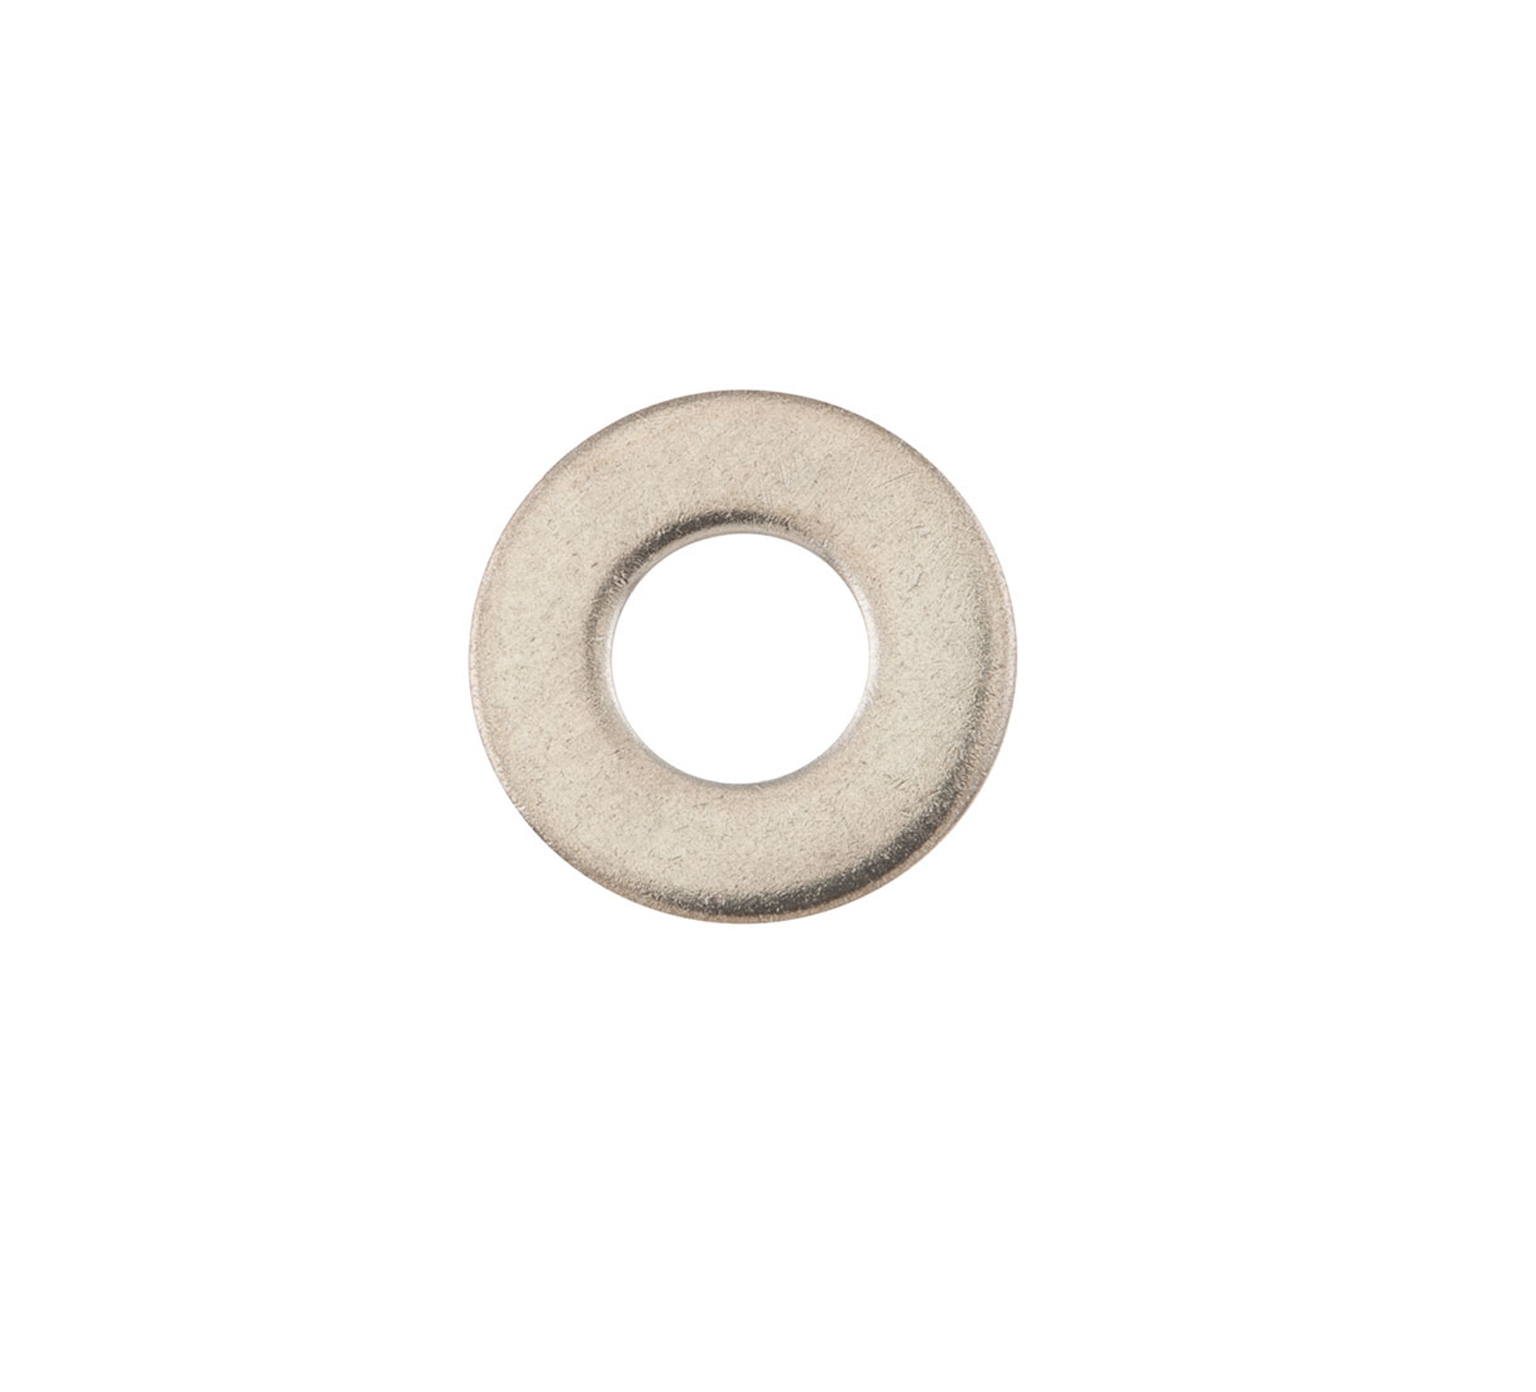 140027 Stainless Steel Flat Washer - 0.75 x 0.35 x 0.04 in alt 1